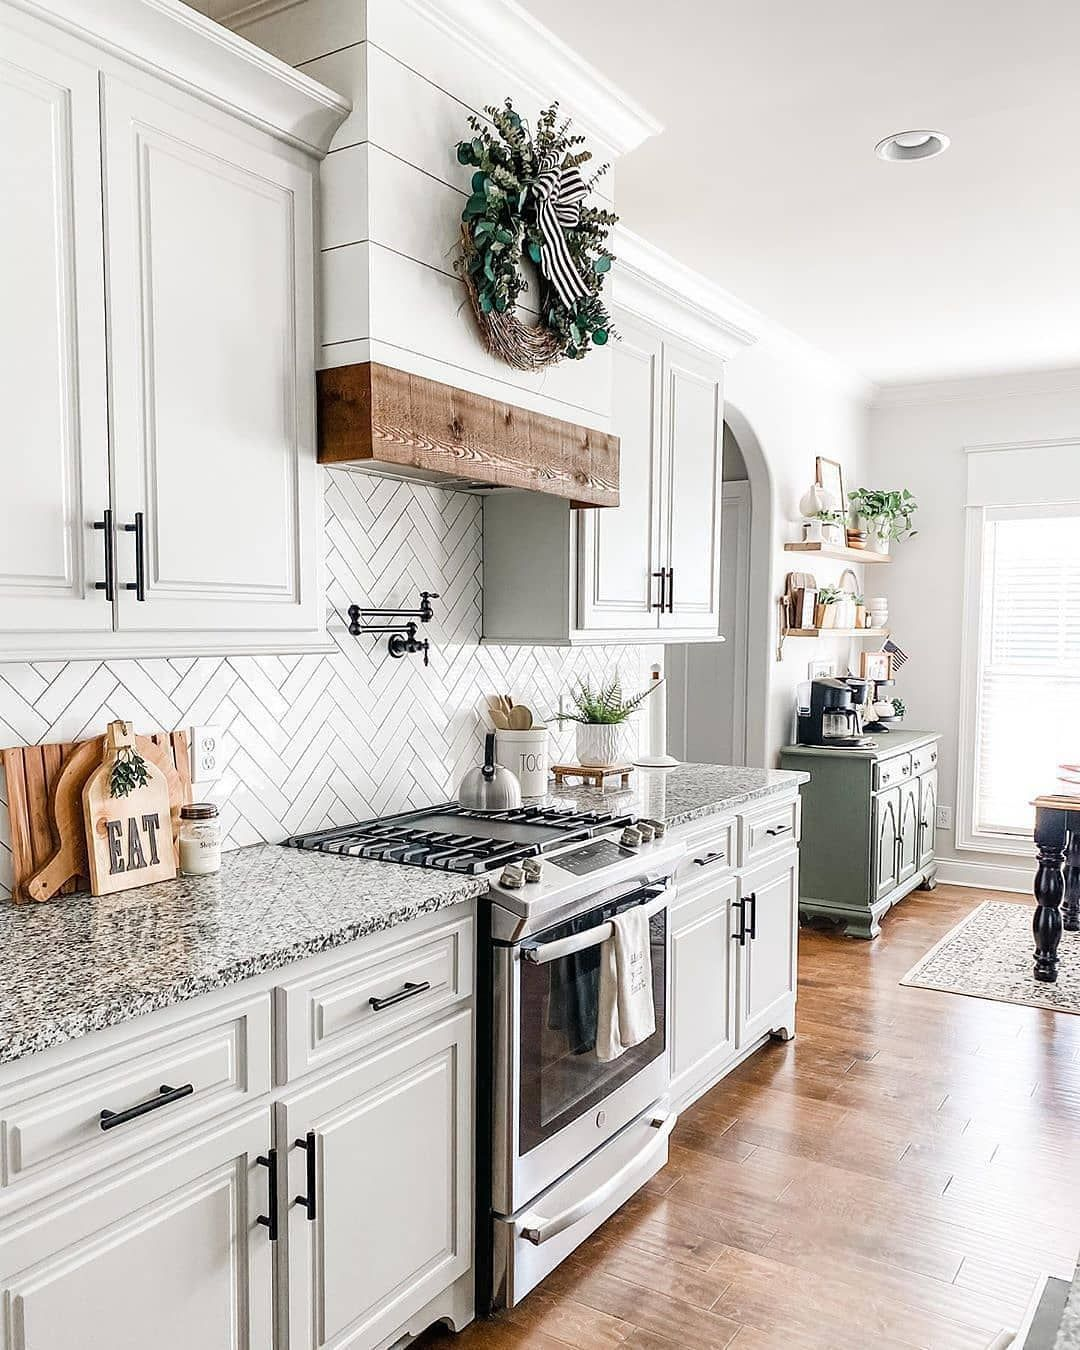 "Farmhouse Homes 🏡 on Instagram: ""We are in LOVE with this farmhouse kitchen! 😍🙌 What do you think? 👀 TAG a friend who will LOVE this! ❤️👇 (@greenacresfarmhouse) -- Follow…"""